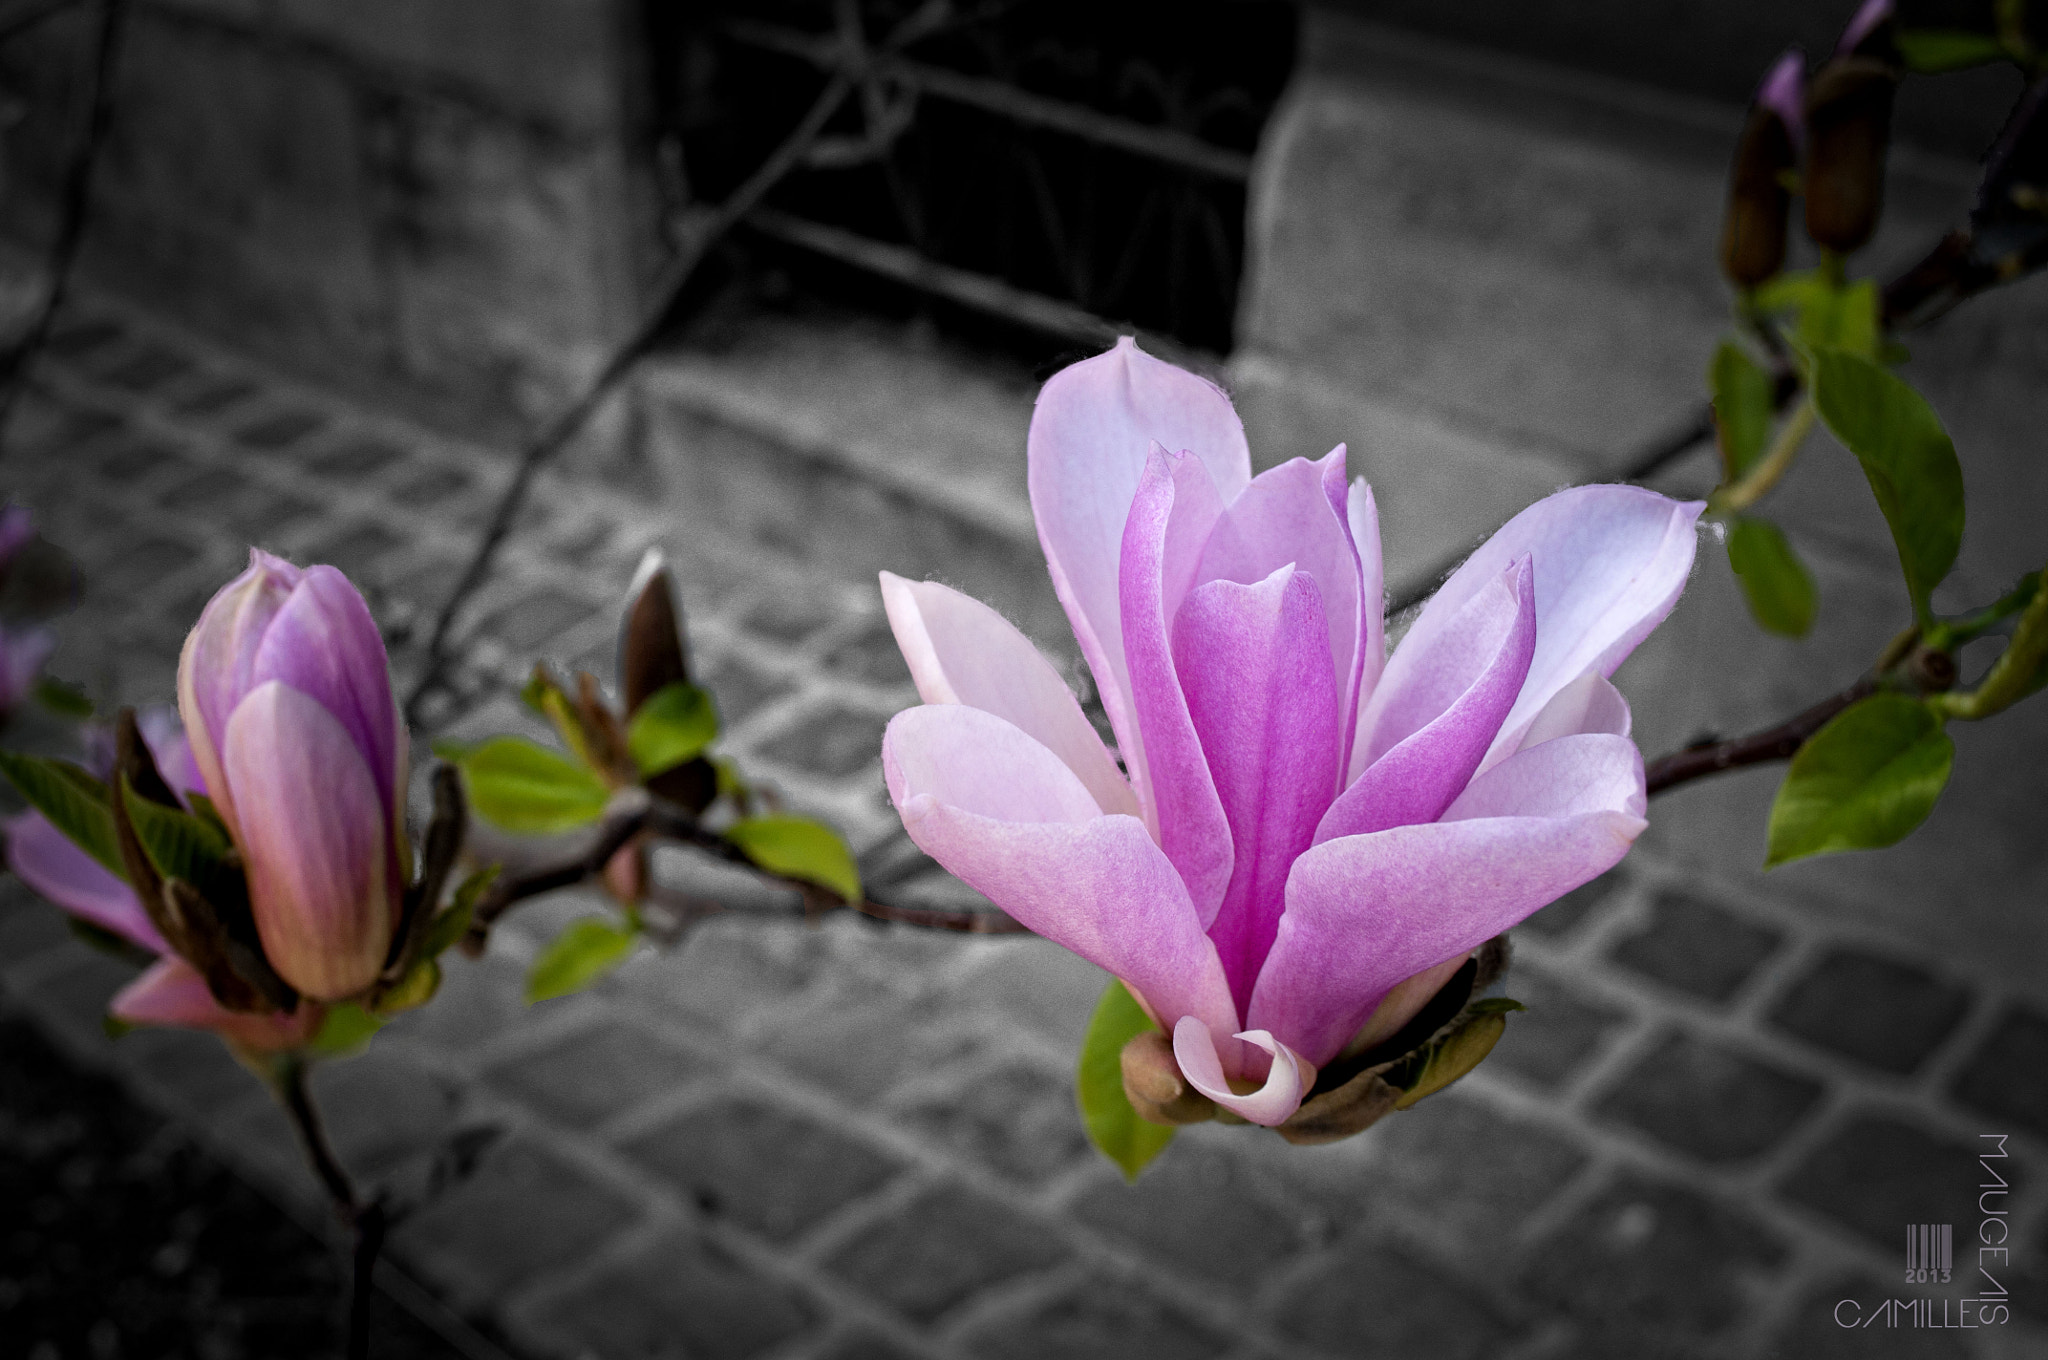 Photograph Flower bloom by Camille Maugeais on 500px